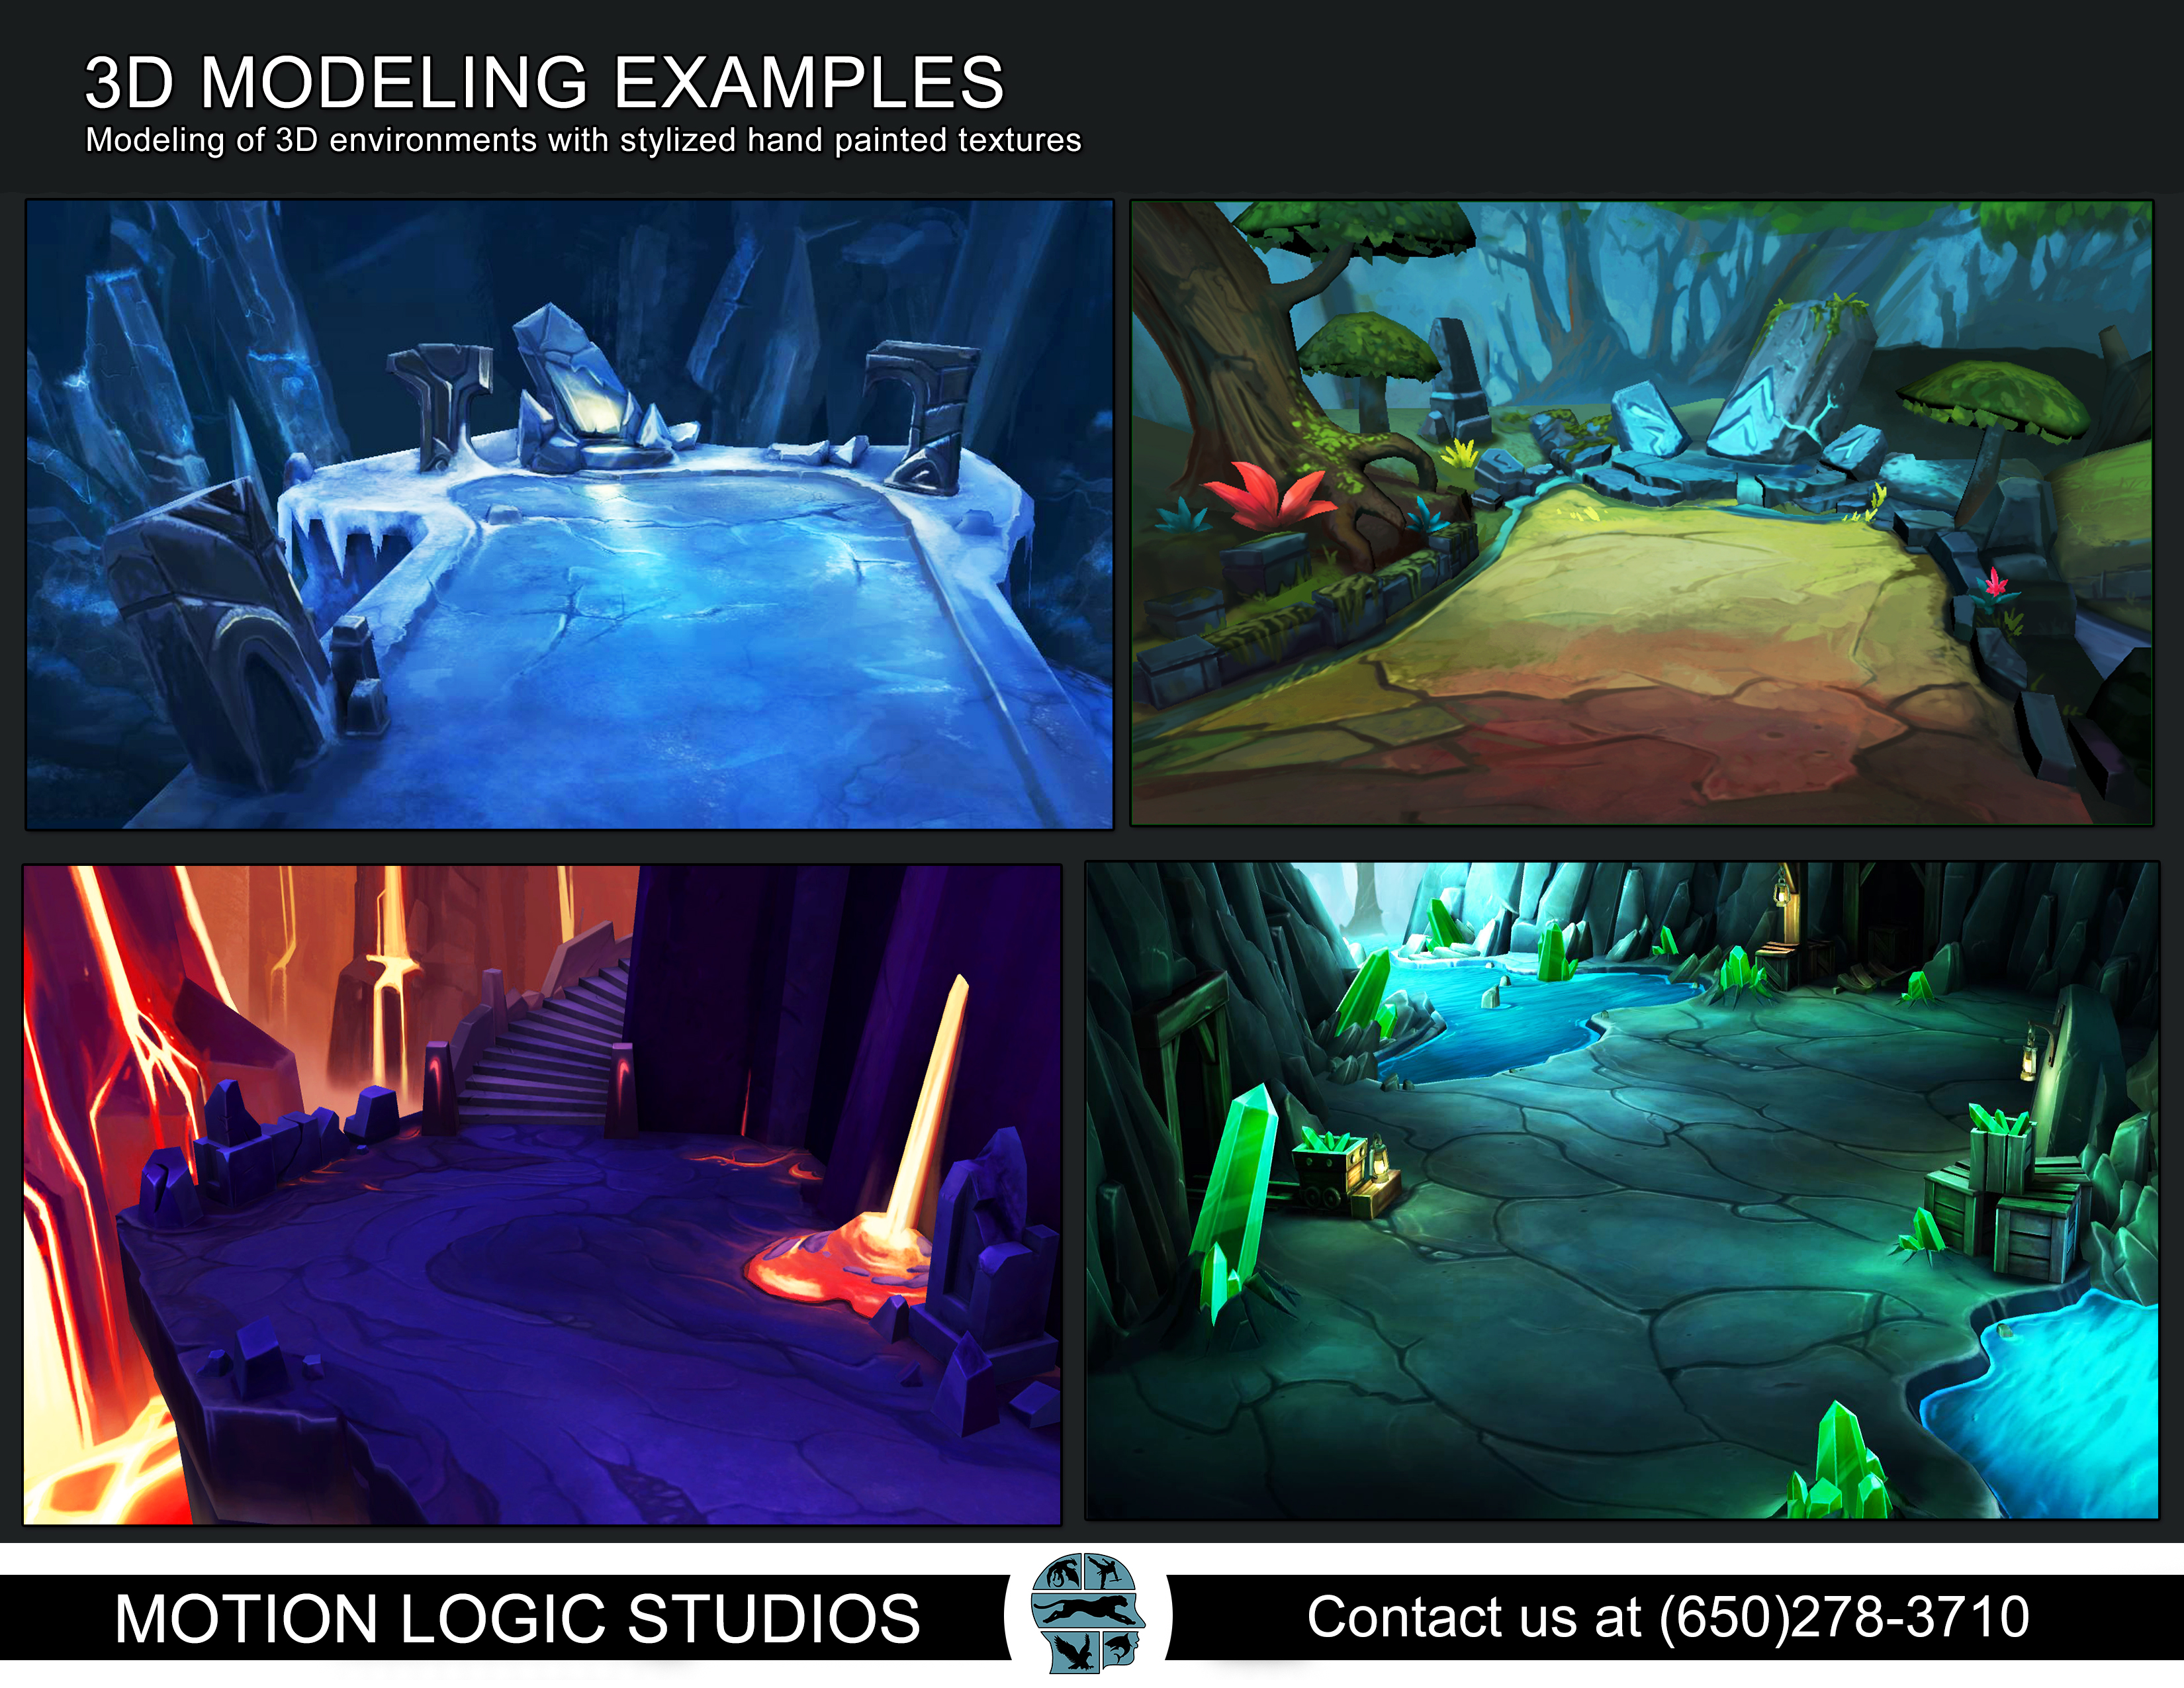 Environment Design and Modeling